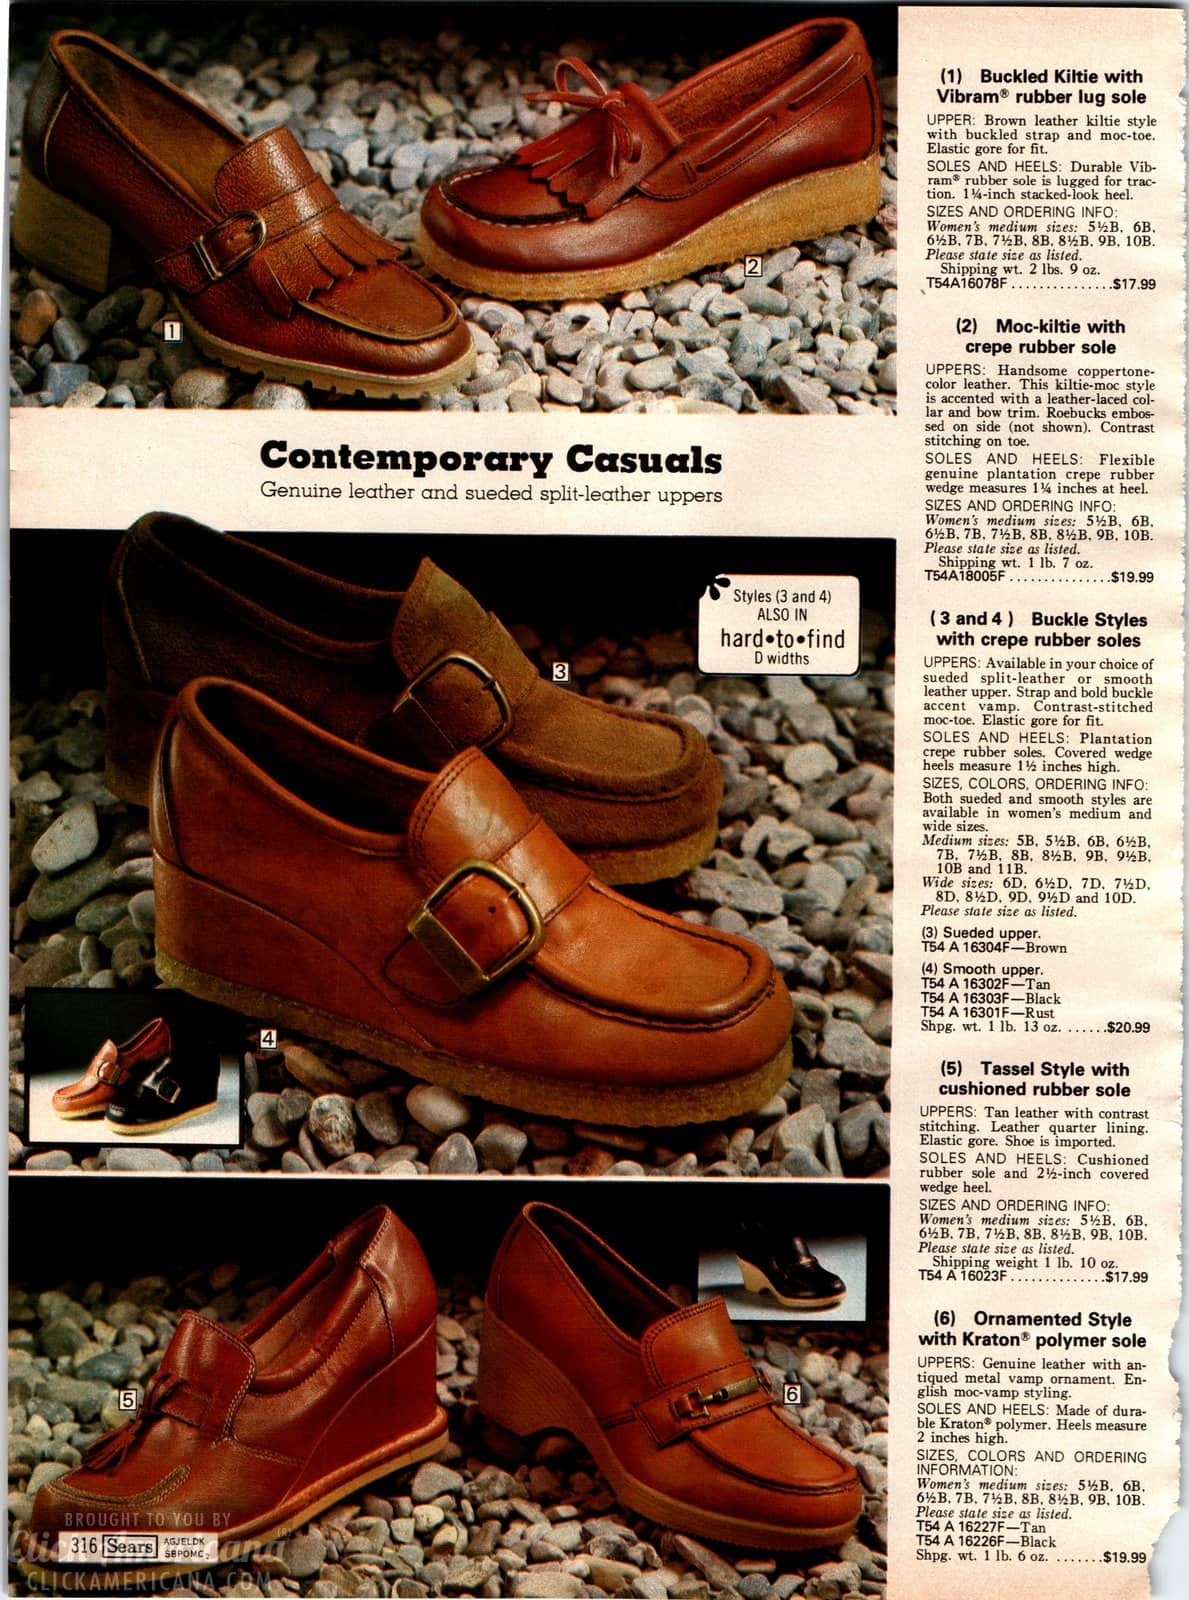 Retro casual shoes for women with brown leather uppers and rubber soles